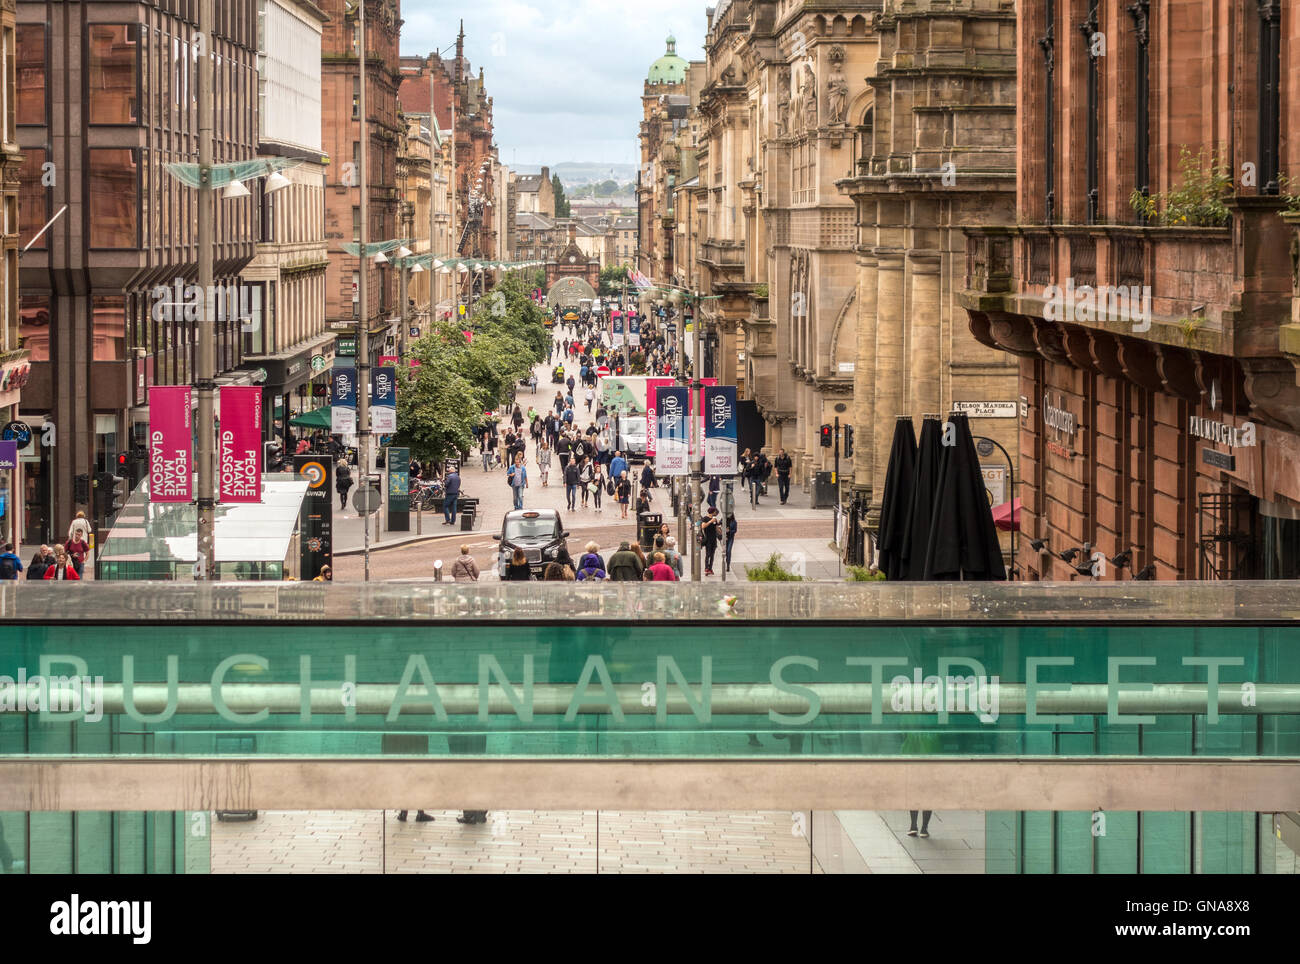 https://c7.alamy.com/comp/GNA8X8/glasgow-buchanan-street-a-popular-street-for-shopping-entrance-to-GNA8X8.jpg